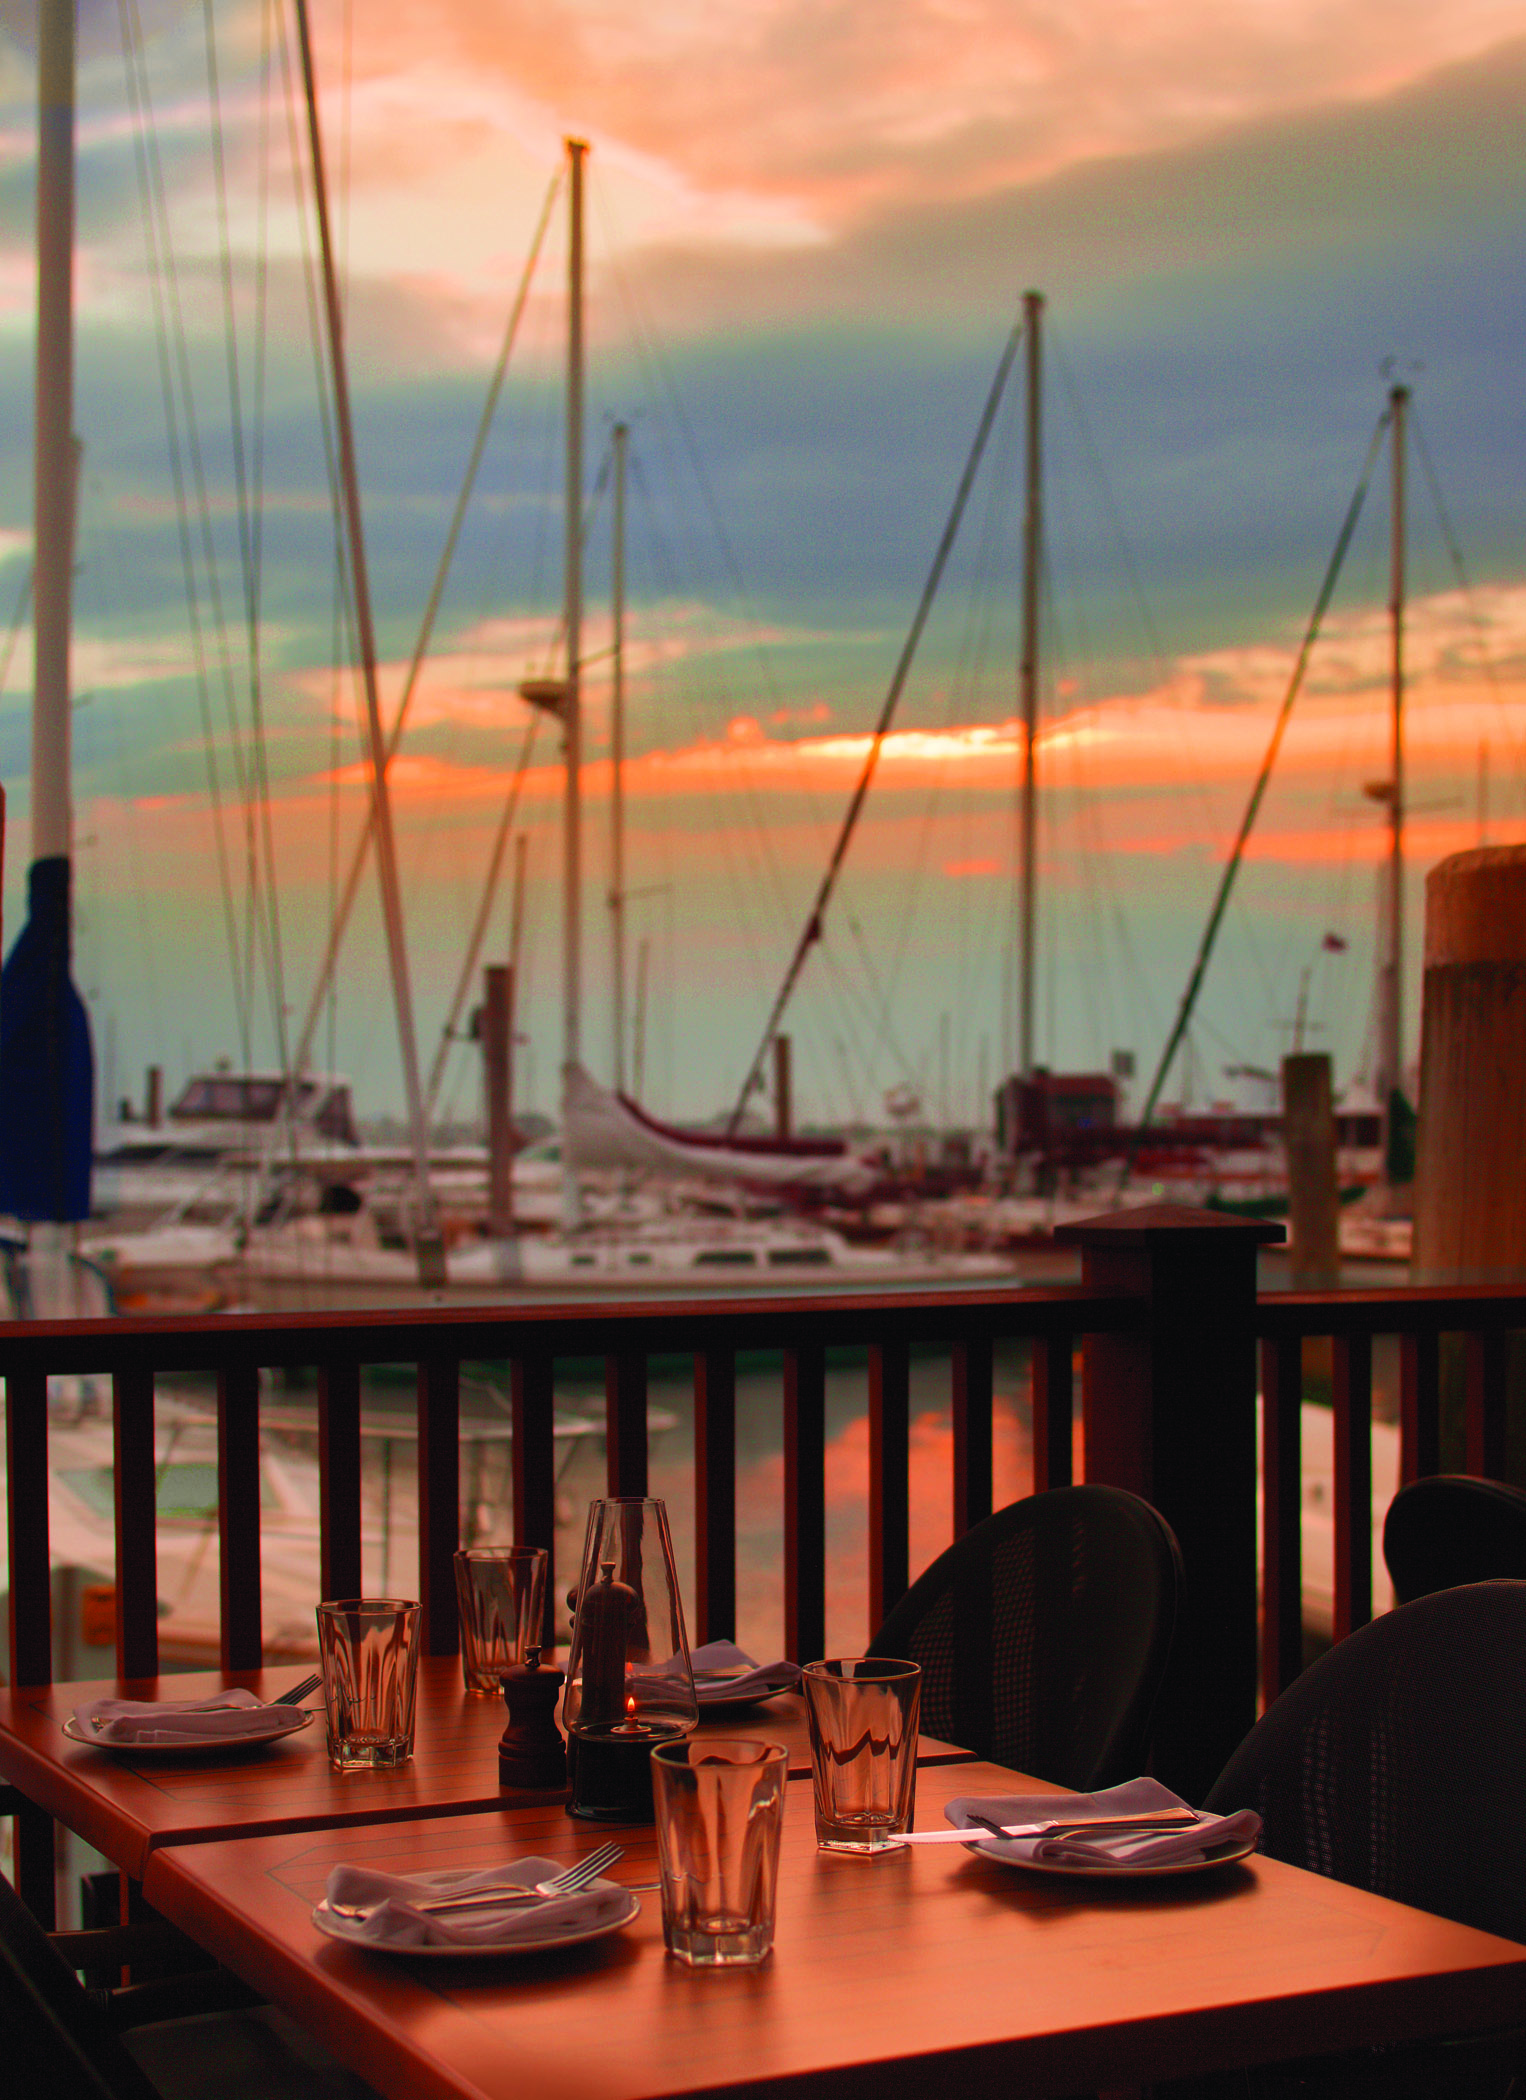 Dock and dine restaurants in New England